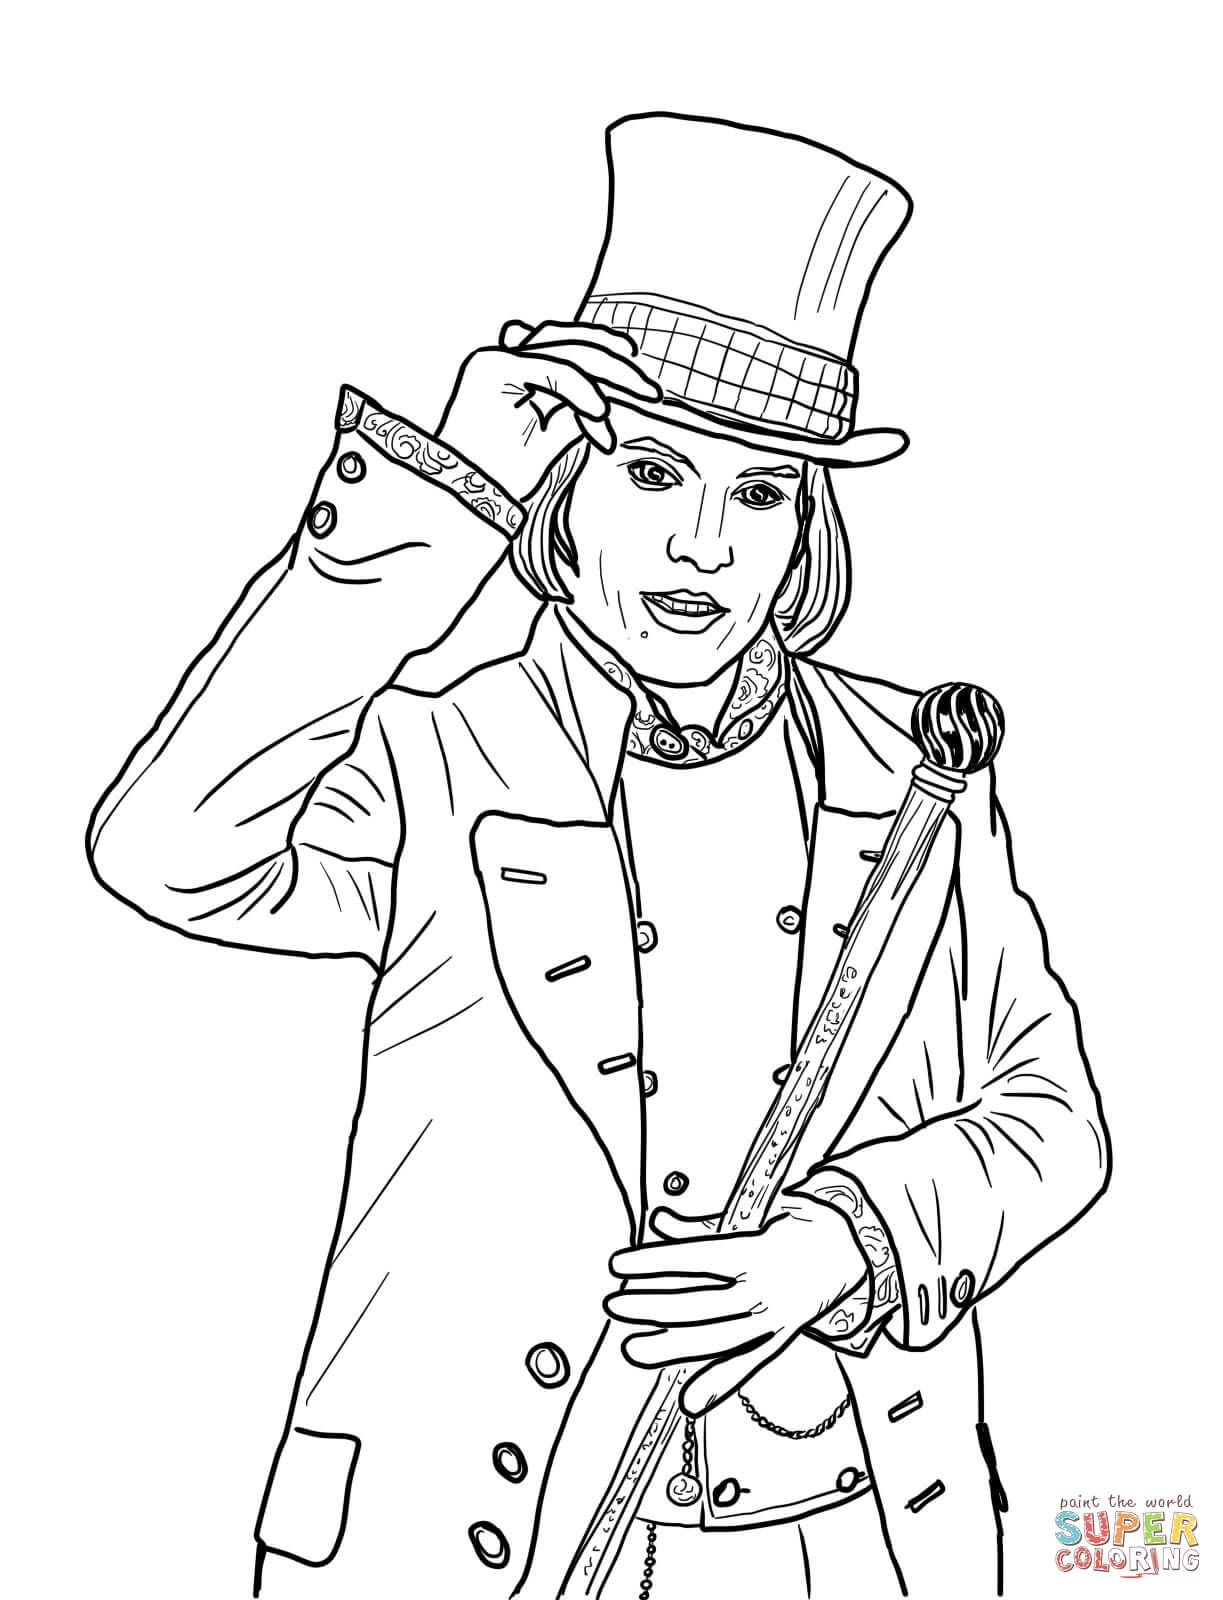 willy wonka coloring pages Pin by Rachel Crowell on coloring pages | Coloring pages, Willy  willy wonka coloring pages